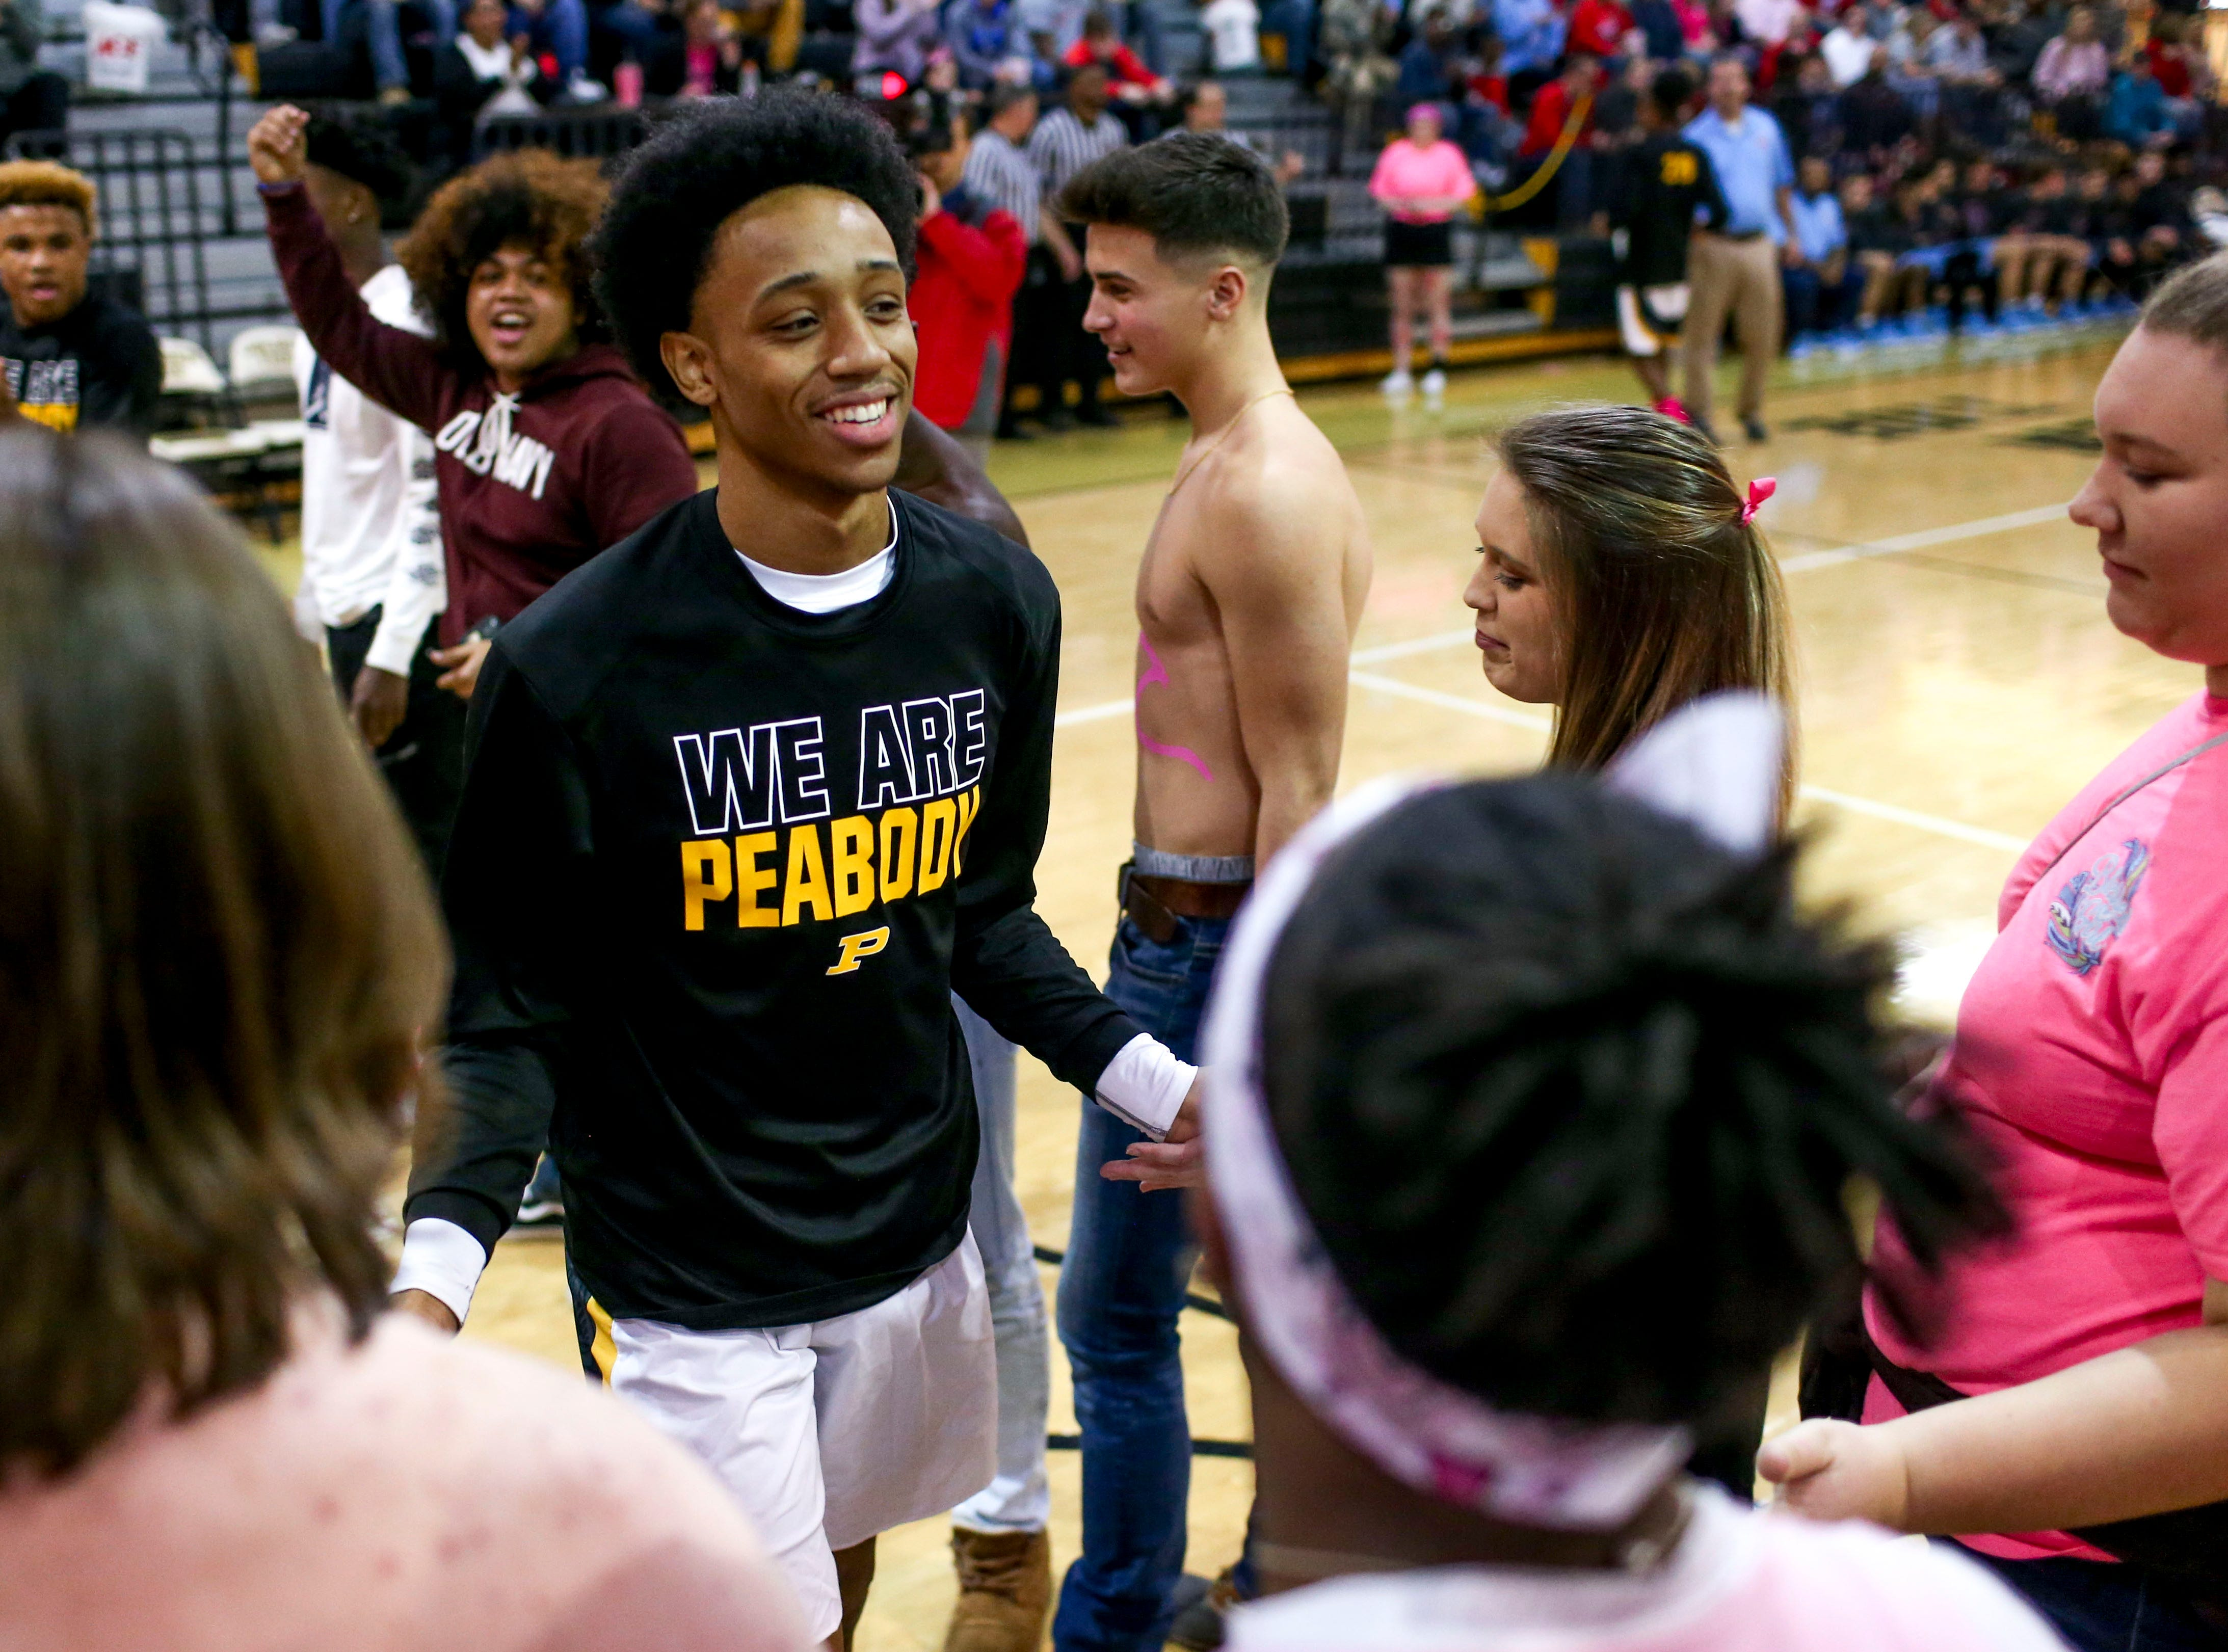 Peabody's Ja'Darius Harris (1) enters the game to fanfare from fans and teammates in a TSSAA basketball game between Peabody and Gibson County at Peabody High School in Trenton, Tenn., on Friday, Feb. 8, 2019.